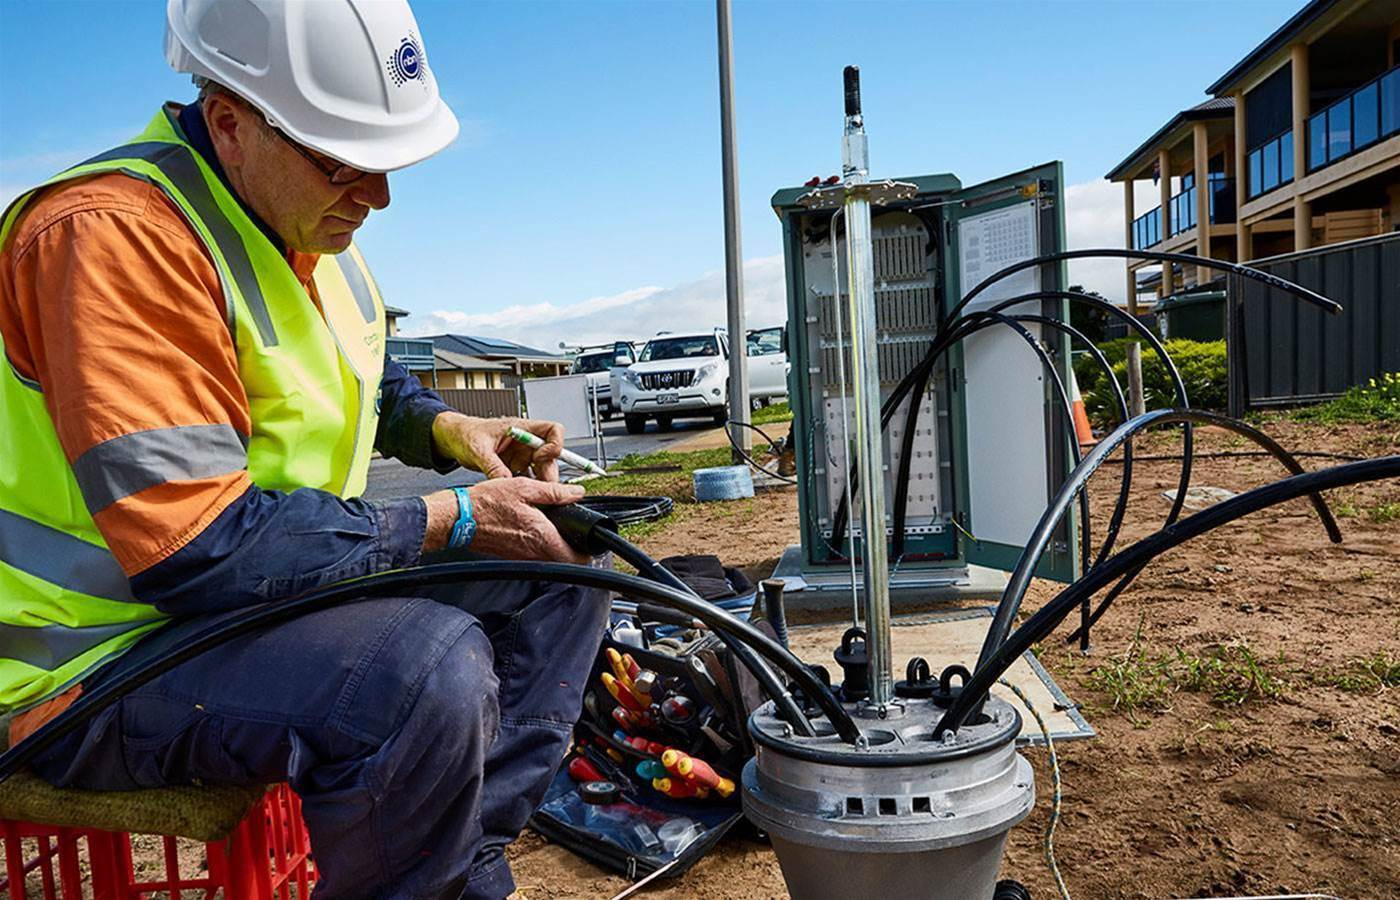 NBN Co may have to pay users stuck in congested wireless cells